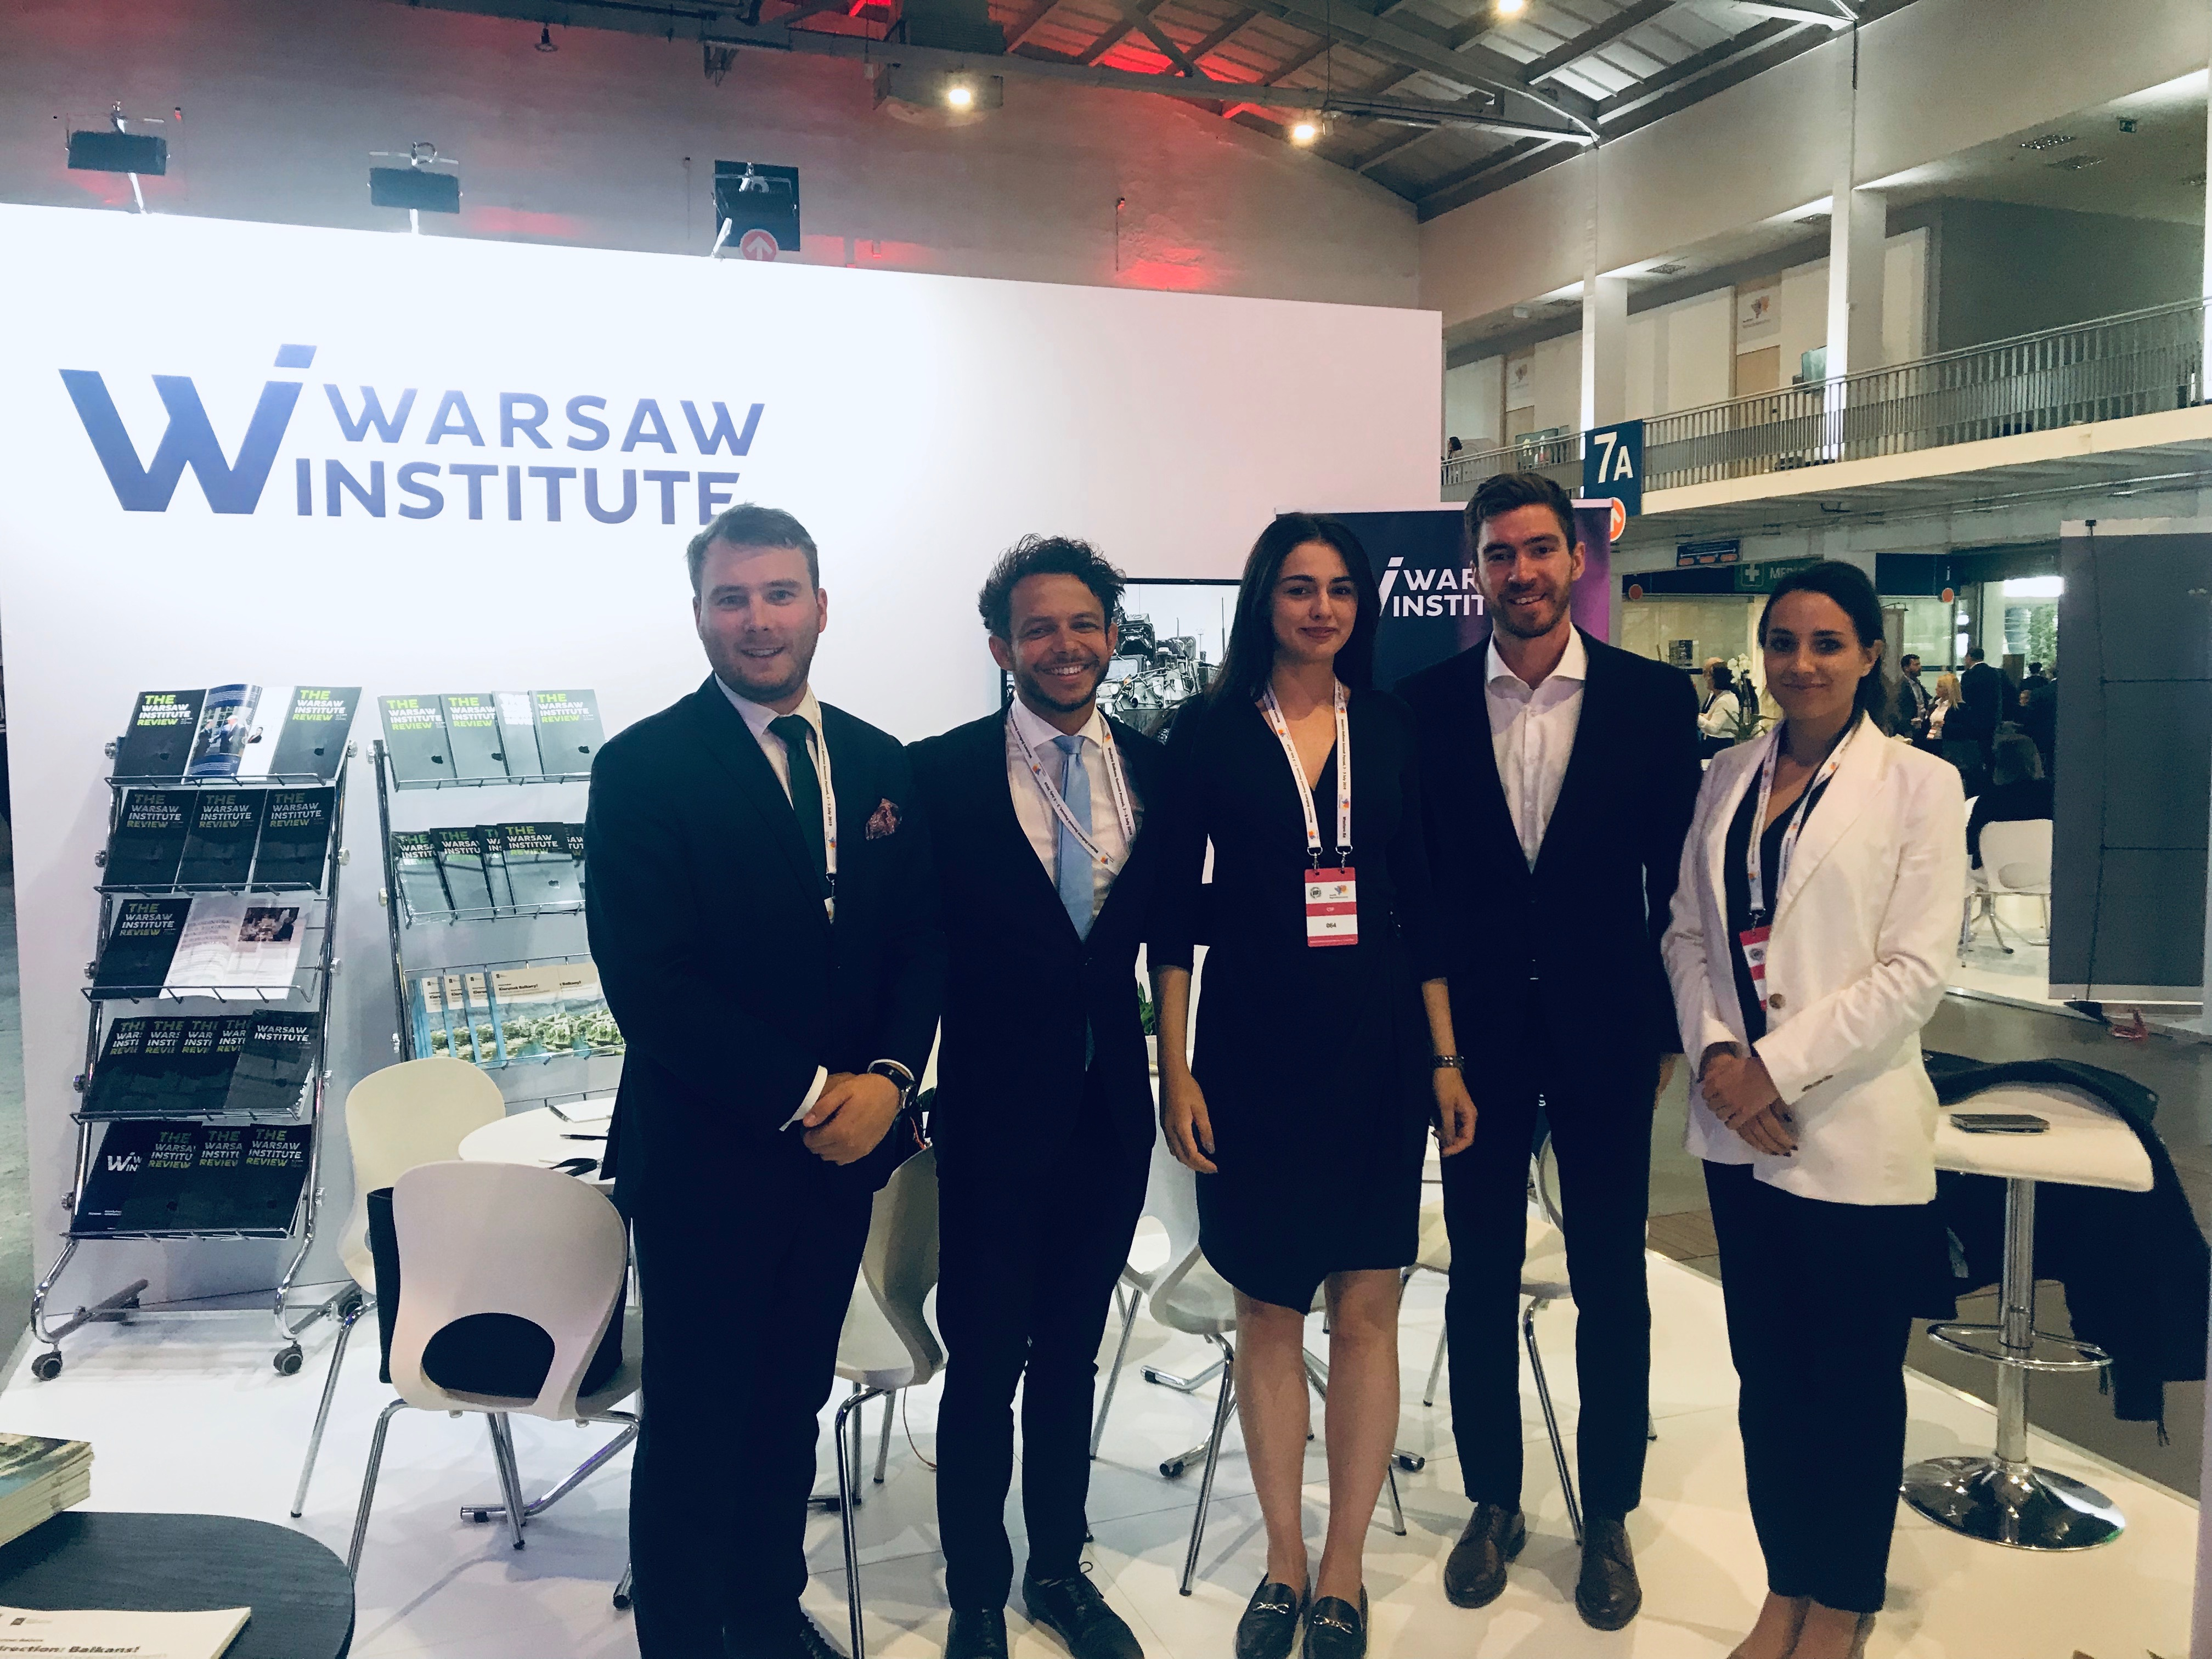 western balkans summit 2019 in Poznan warsaw institute team